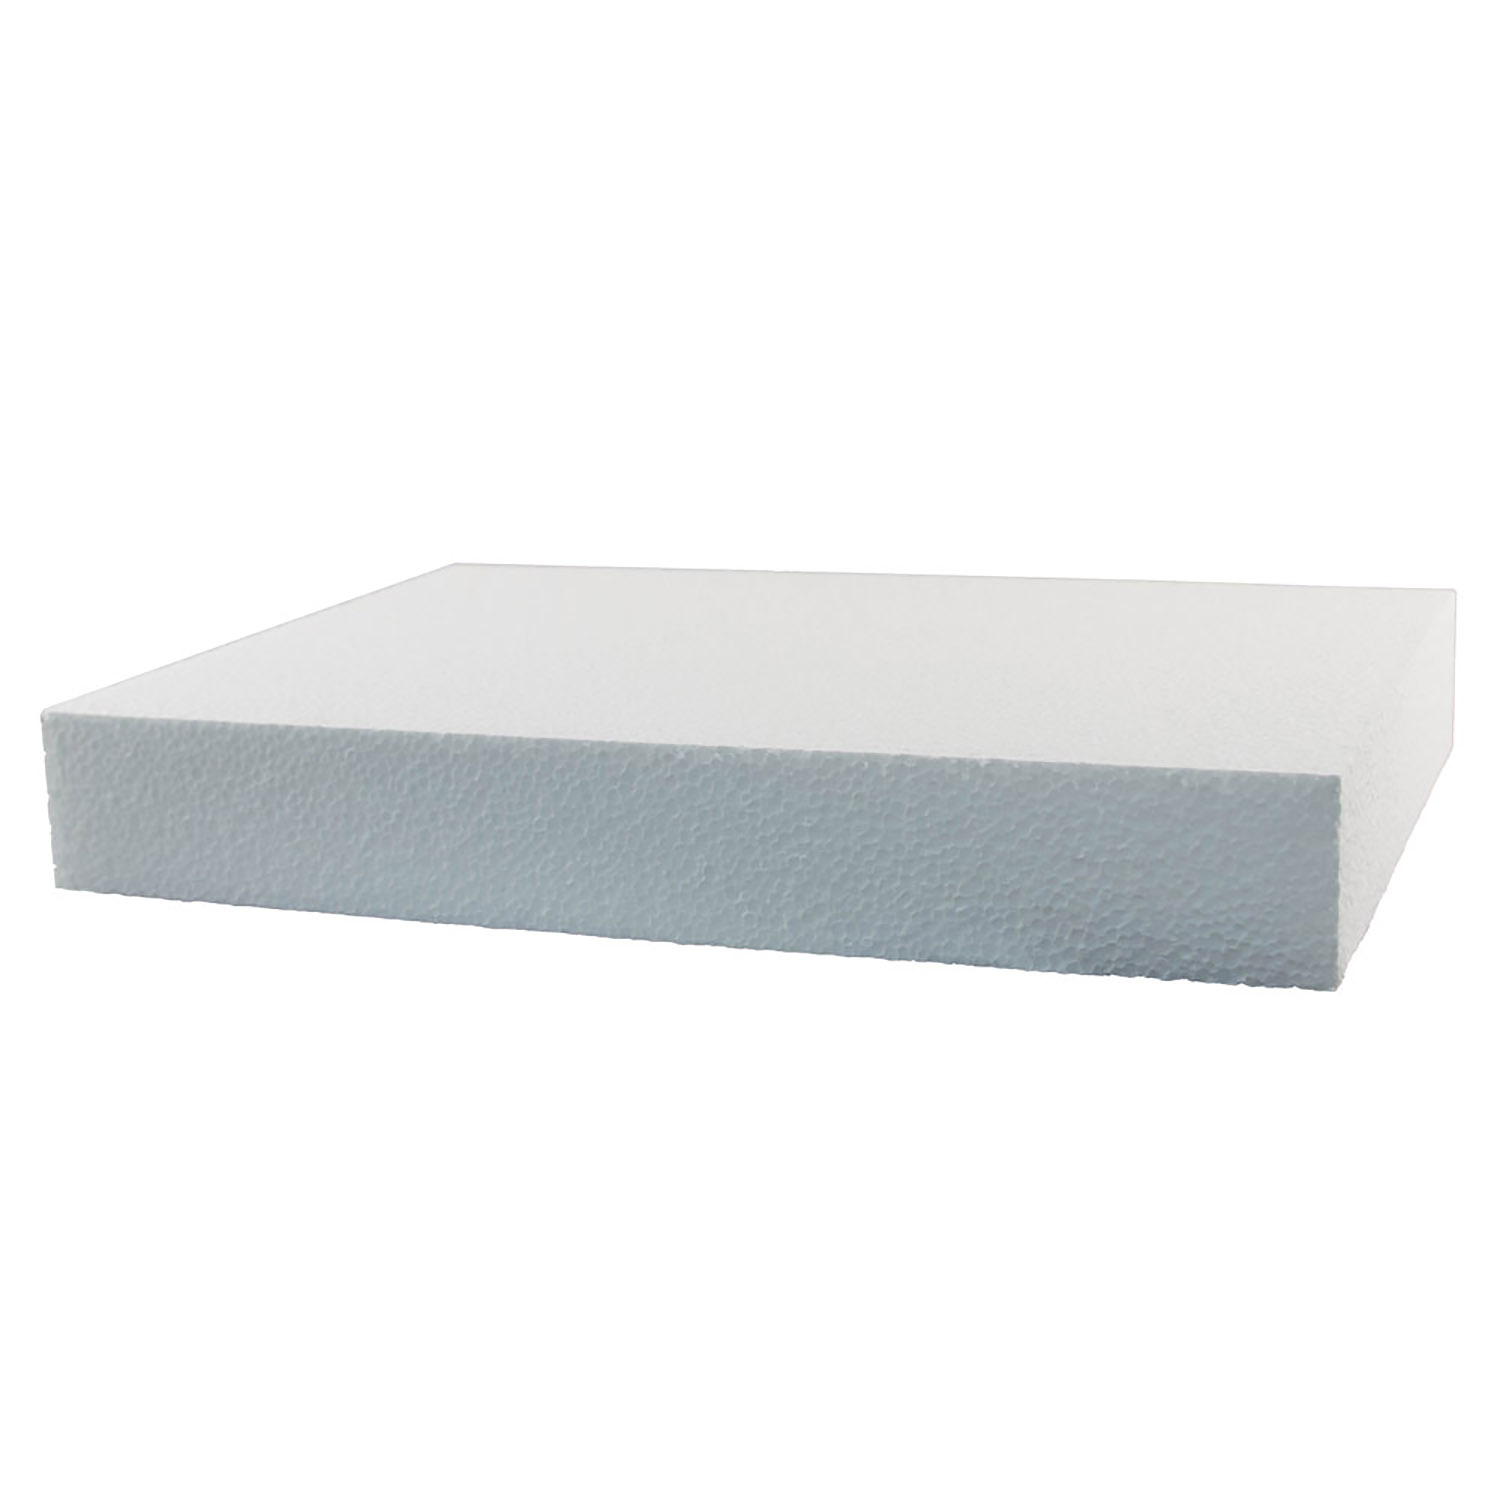 "13"" x 9"" x 2"" Rectangular Styrofoam Quarter Sheet Cake Dummy"